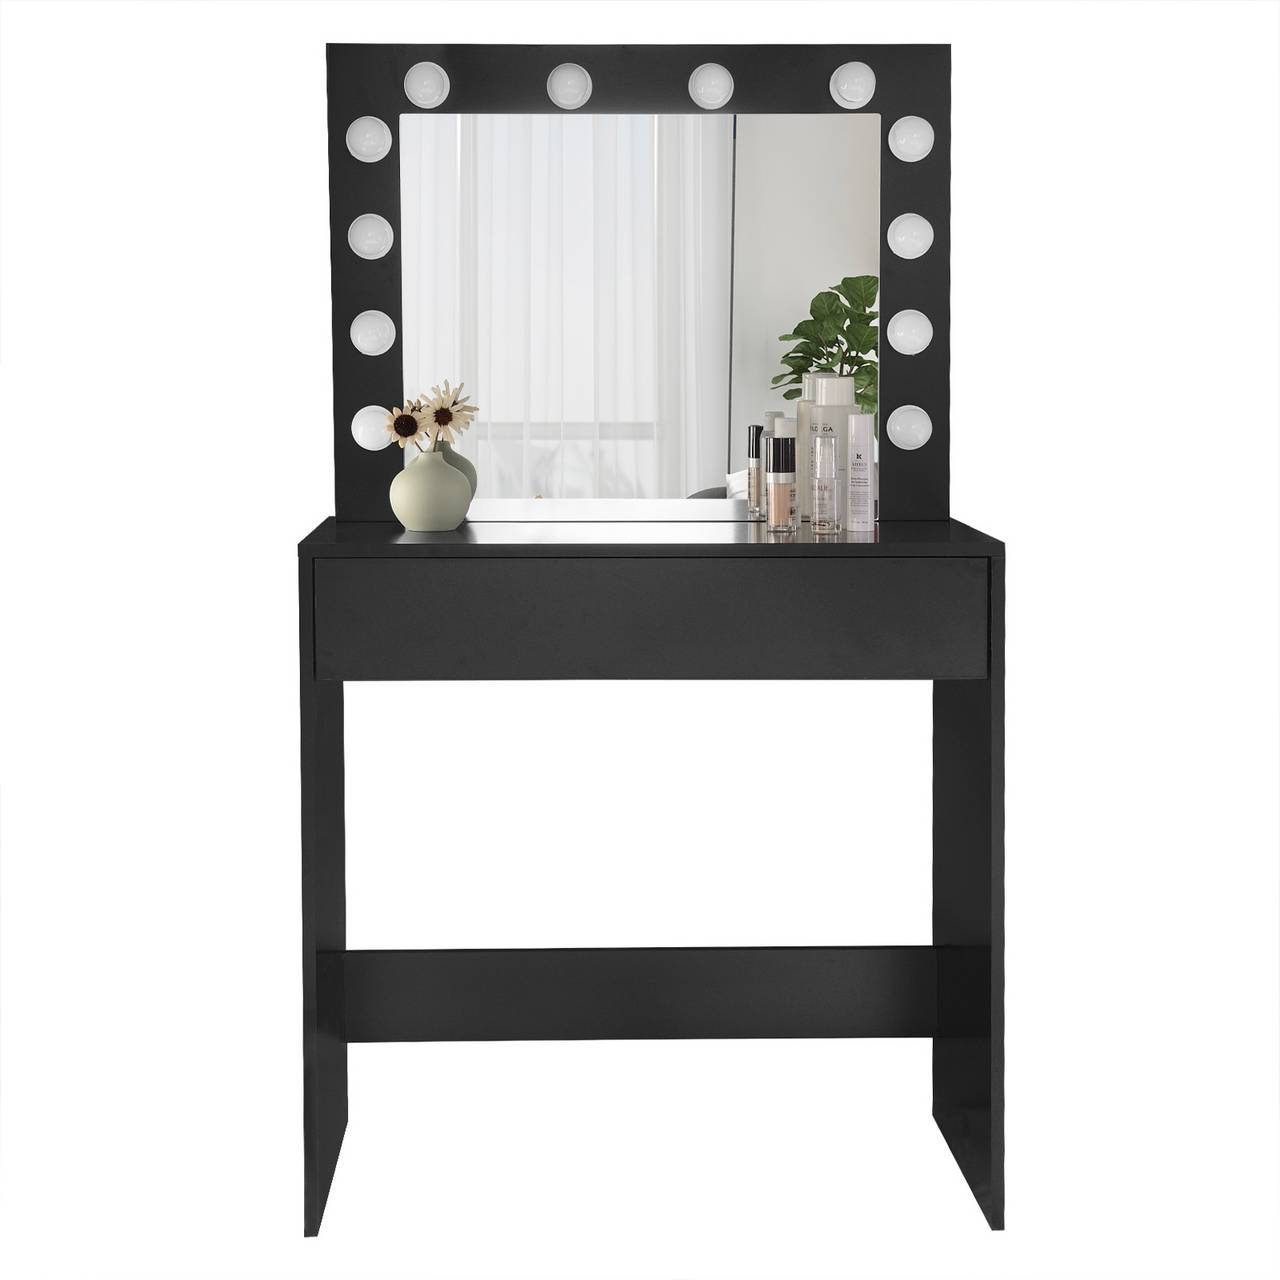 Dressing table with LED lighting made of wood, black